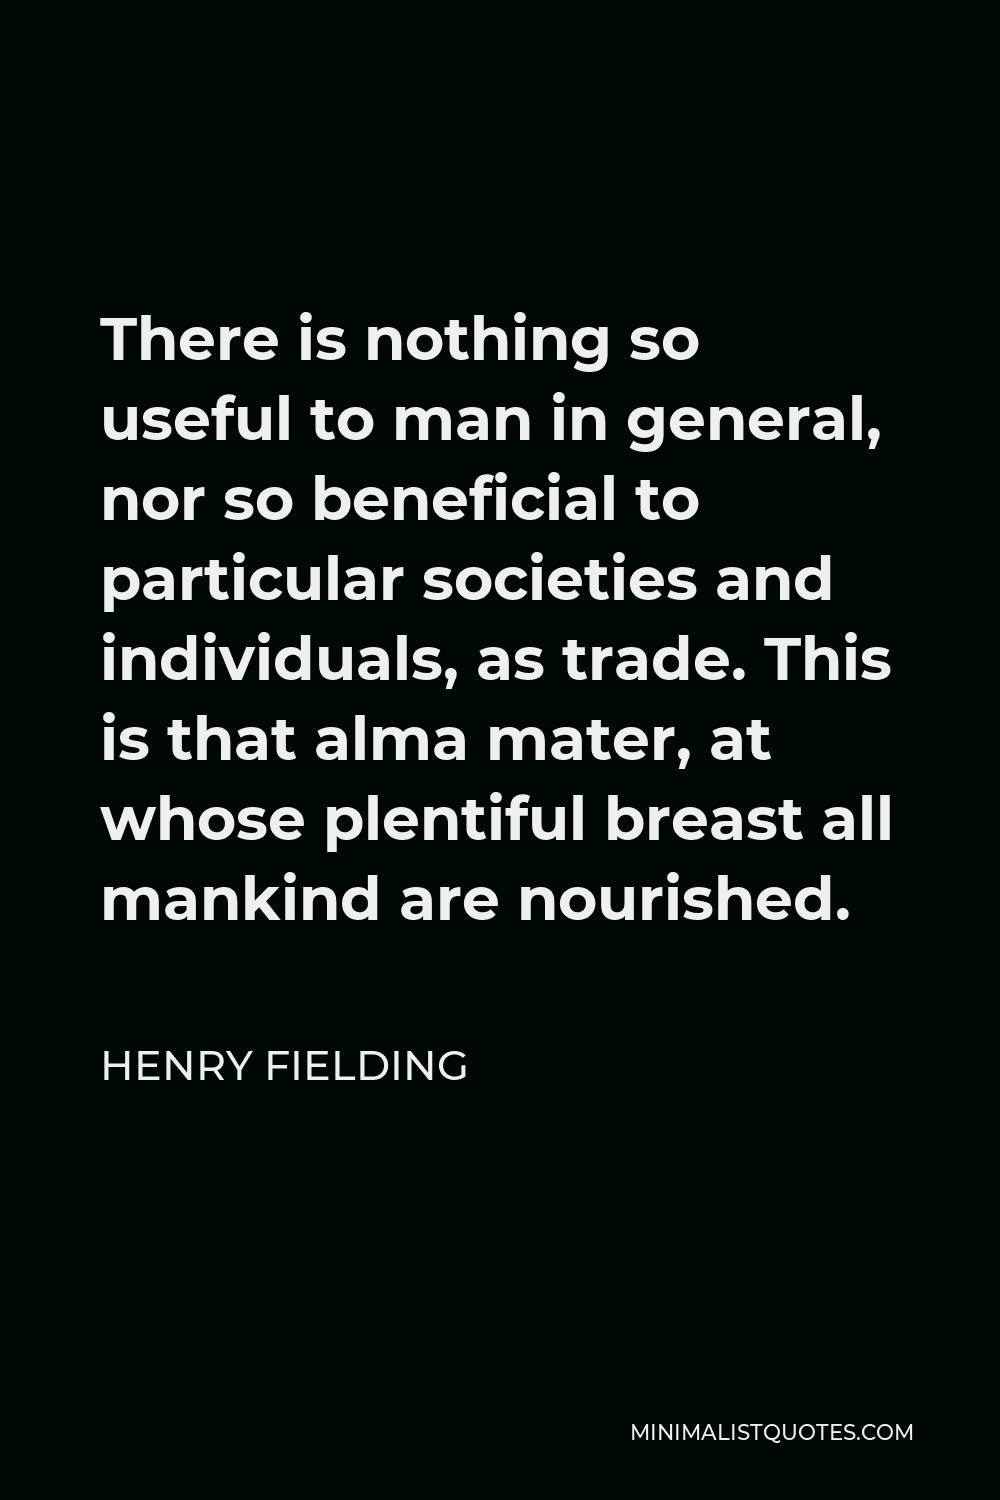 Henry Fielding Quote - There is nothing so useful to man in general, nor so beneficial to particular societies and individuals, as trade. This is that alma mater, at whose plentiful breast all mankind are nourished.